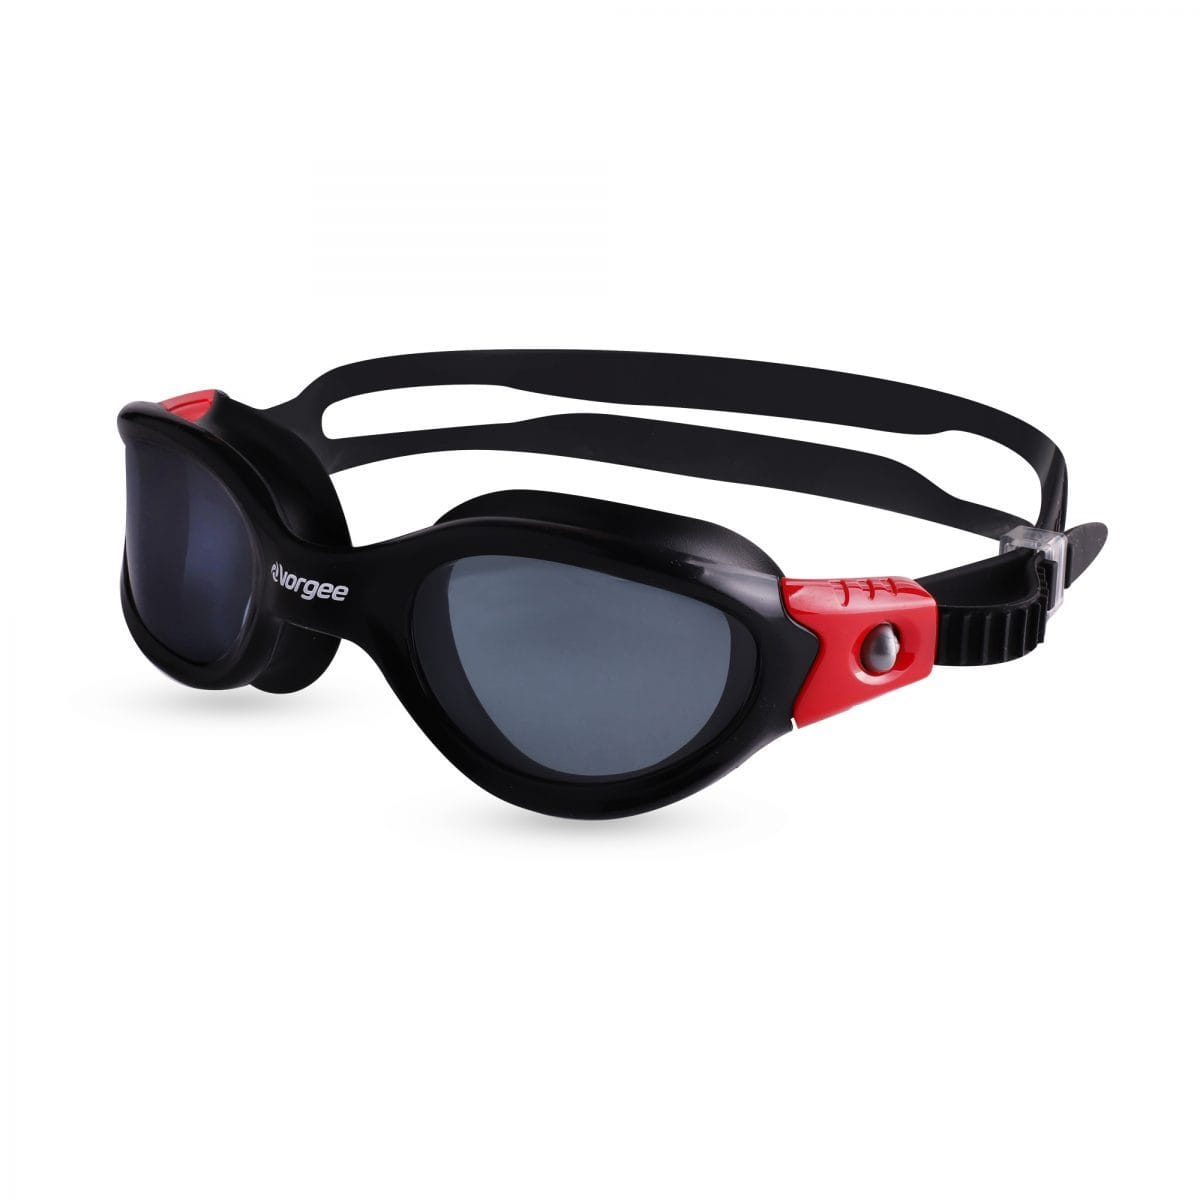 Vorgee Vortech Max Tinted Lens Swim Goggle by Vorgee - Ocean Junction